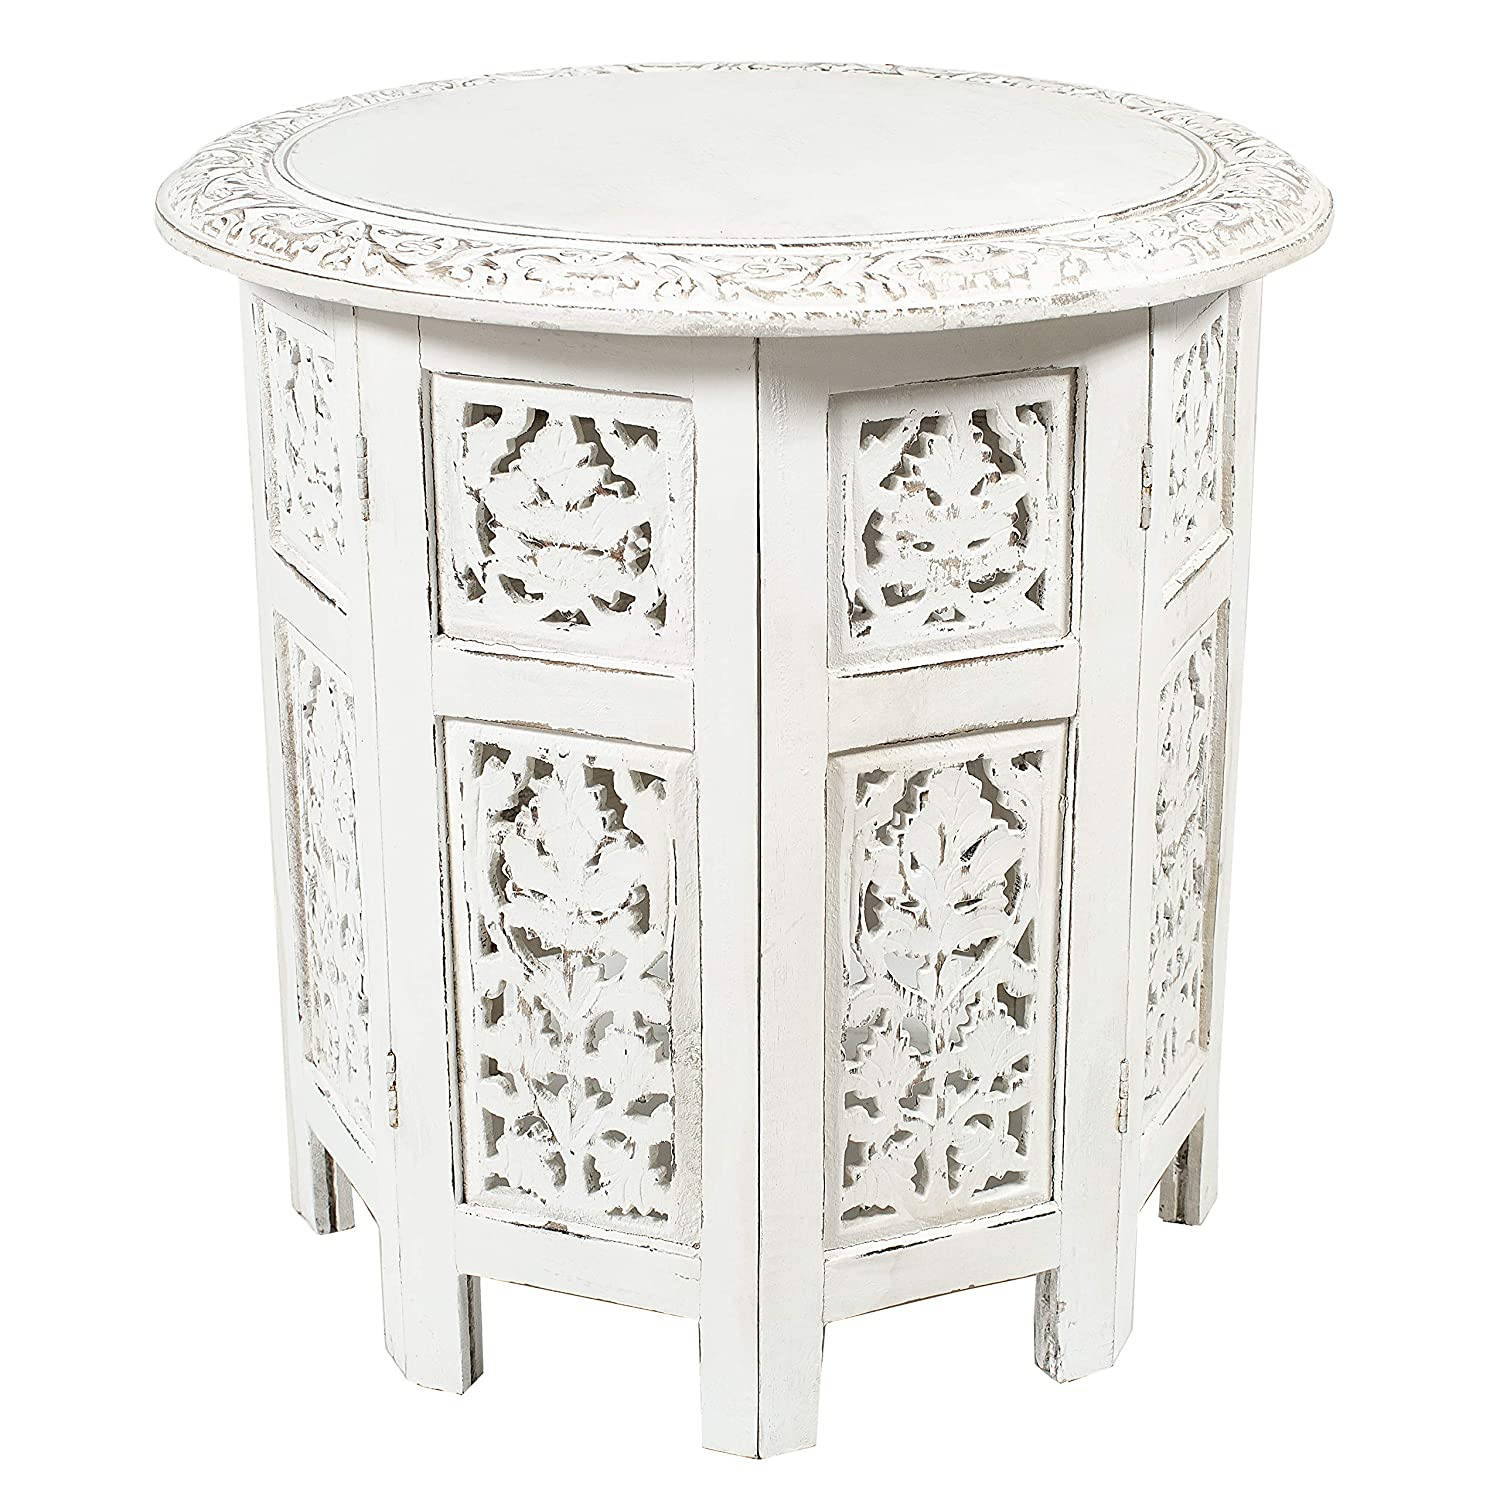 Cotton Craft - Jaipur Solid Wood Handcrafted Carved Folding Accent Coffee Table - Antique White - 18 Inch Round Top x 18 Inch High